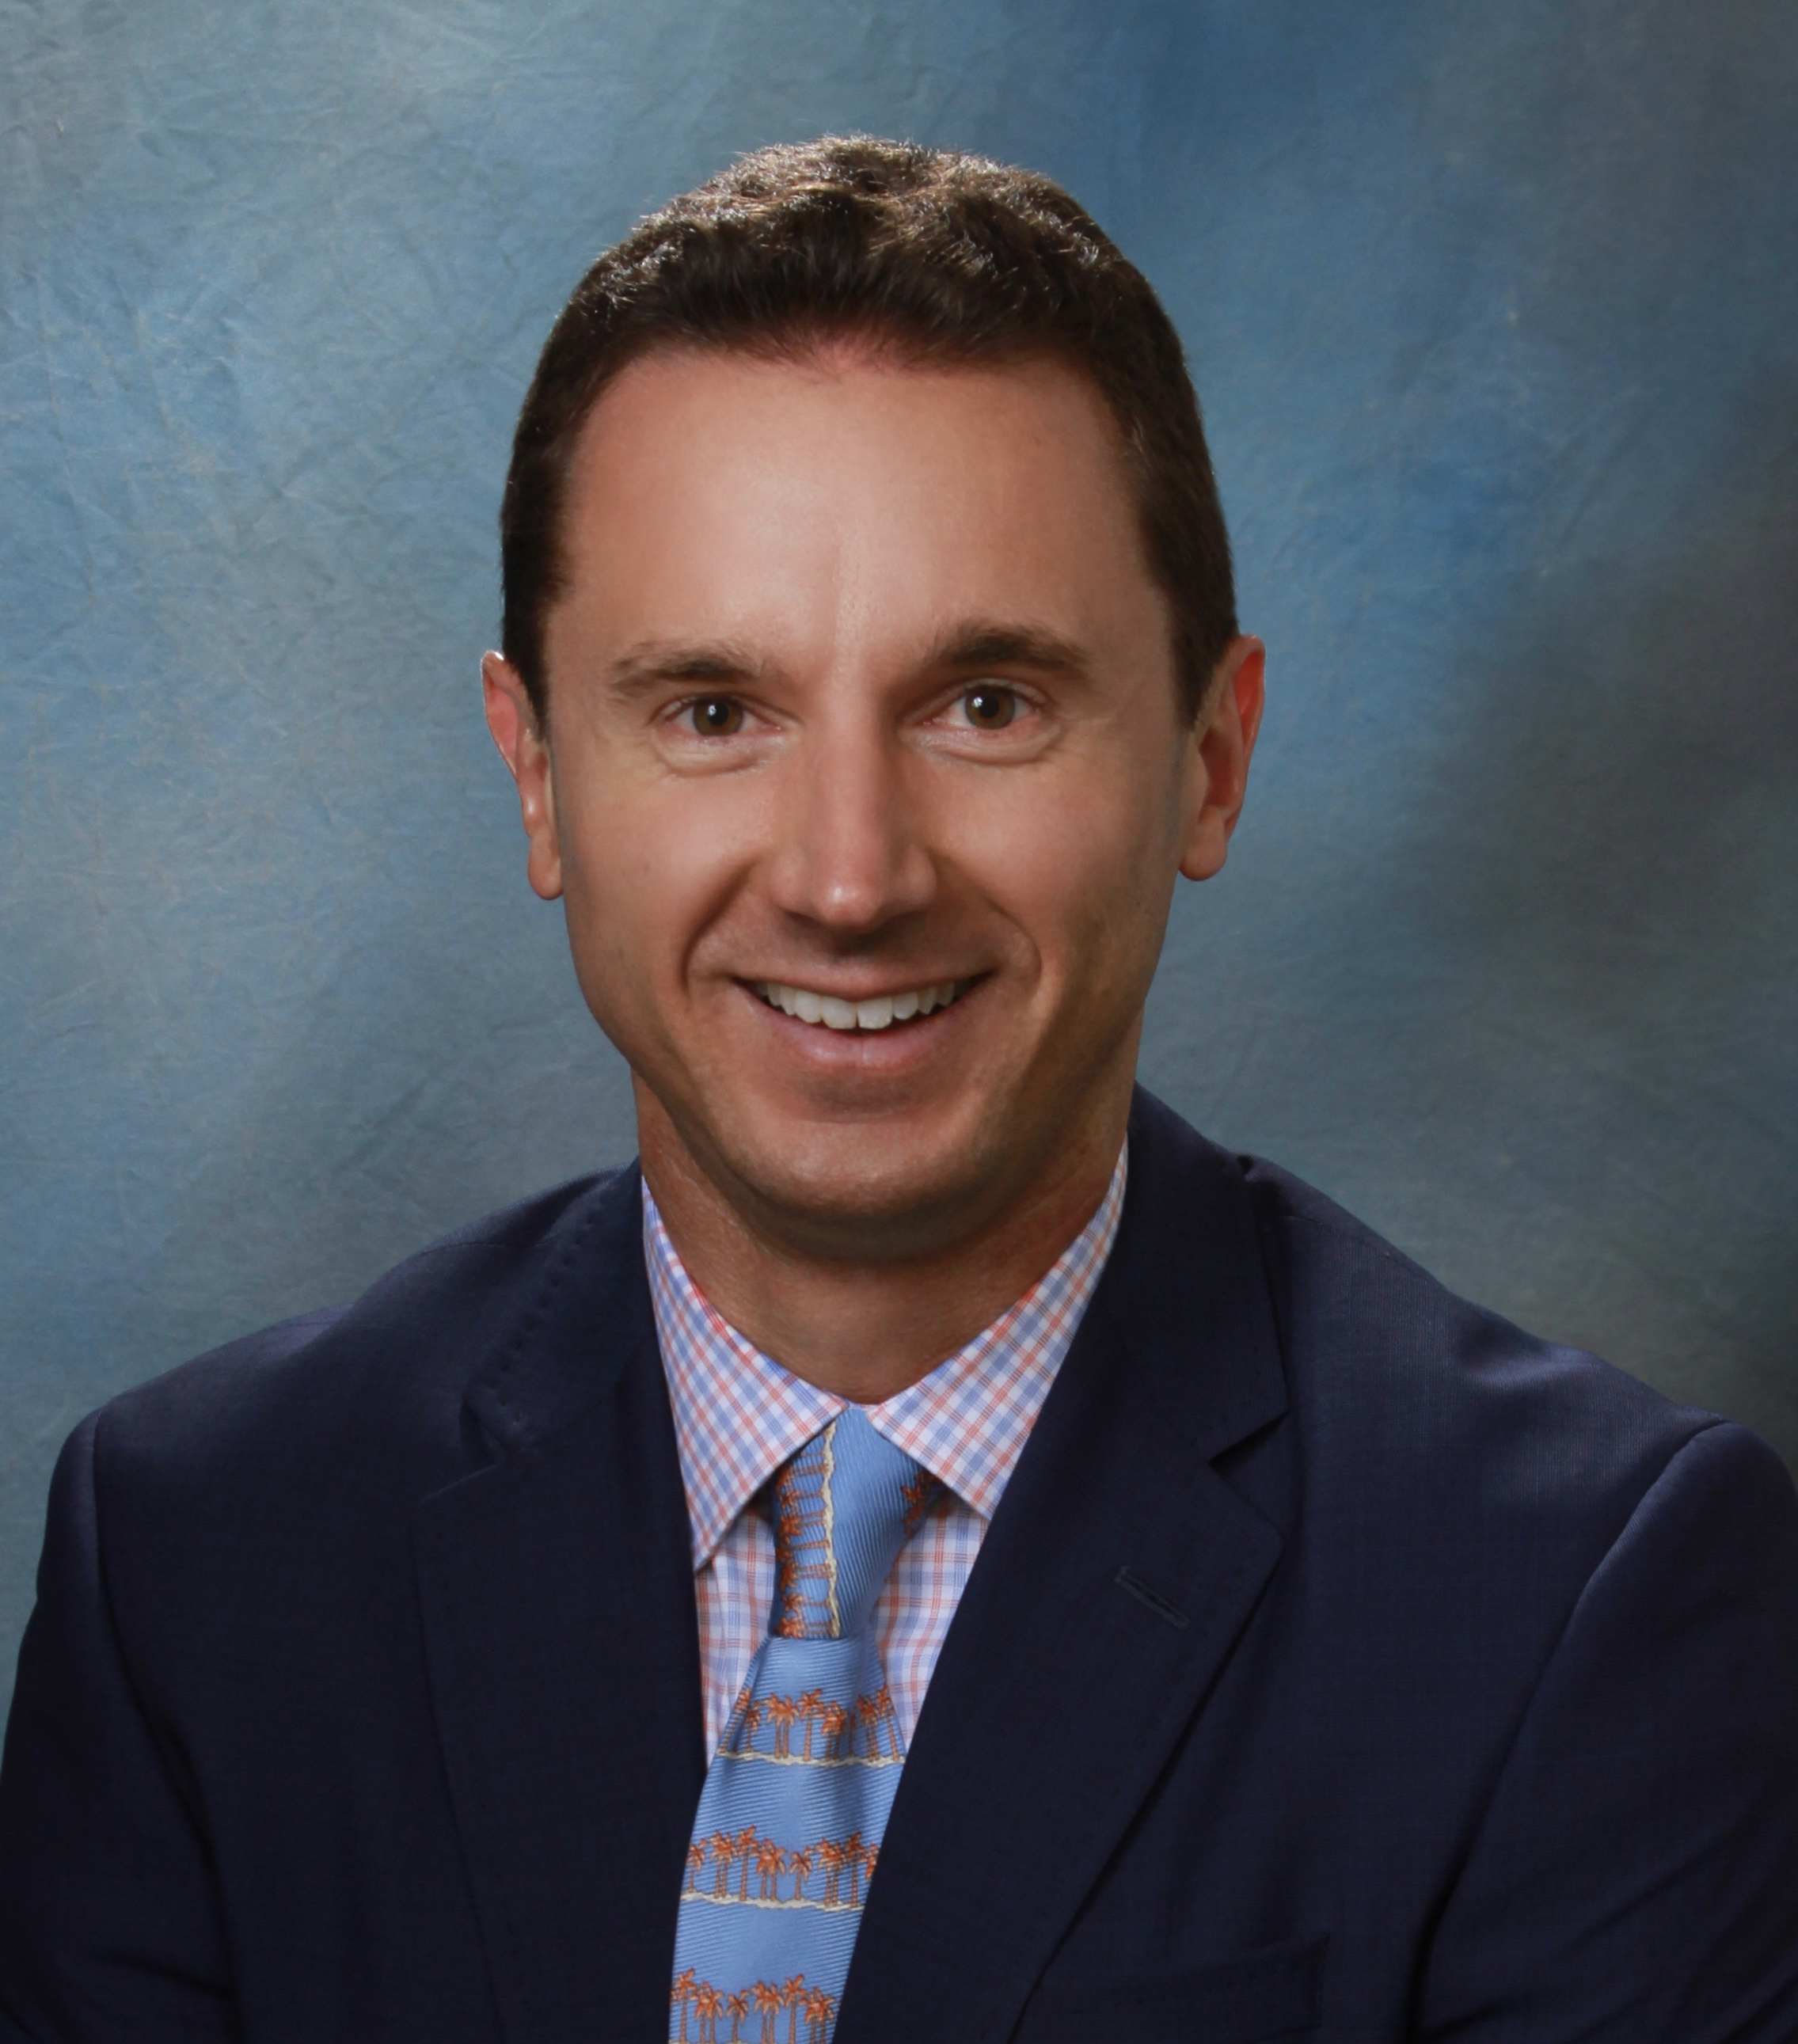 """Jeff Haynie, Law Office of Jeff Haynie - """"BEAM is a community treasure, and it's my goal to work with the other board members to grow and protect this treasure so that it will continue providing hope in our community well into the future."""""""